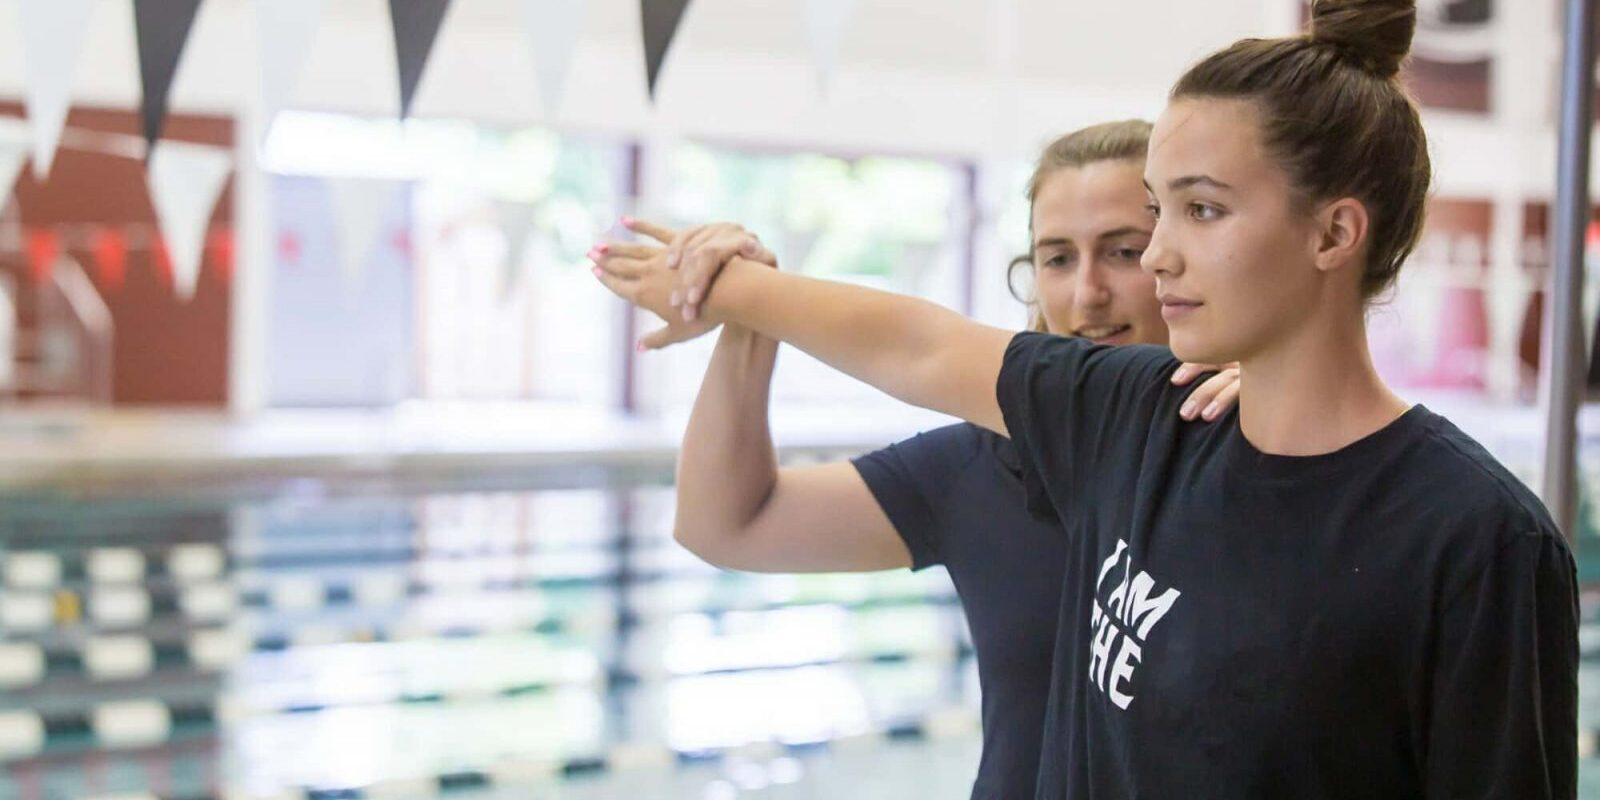 Athletic Trainer Positions Swimmer's Arm